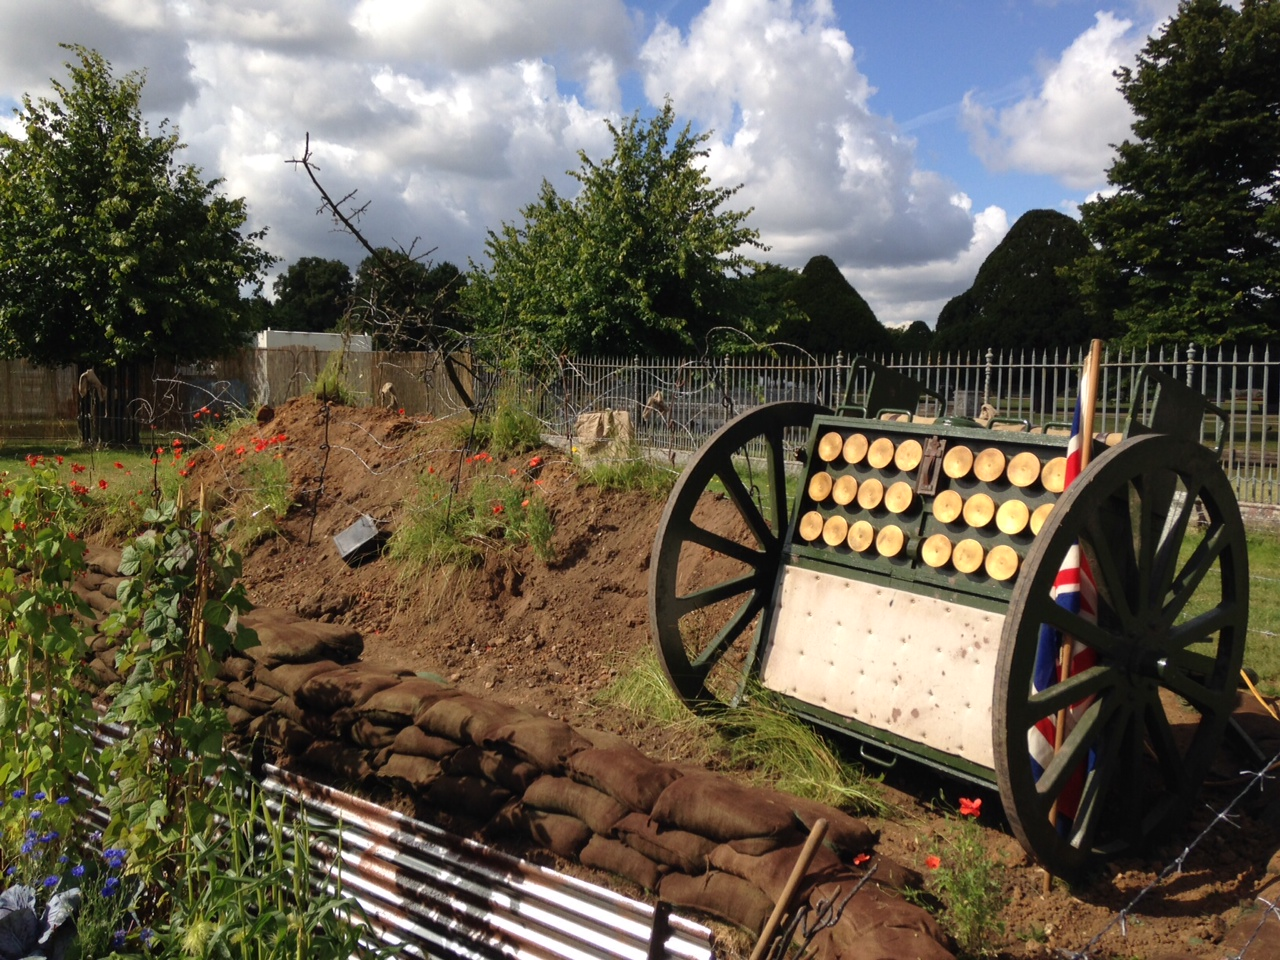 Remember those who lost their lives with this fantastic ww1 garden design